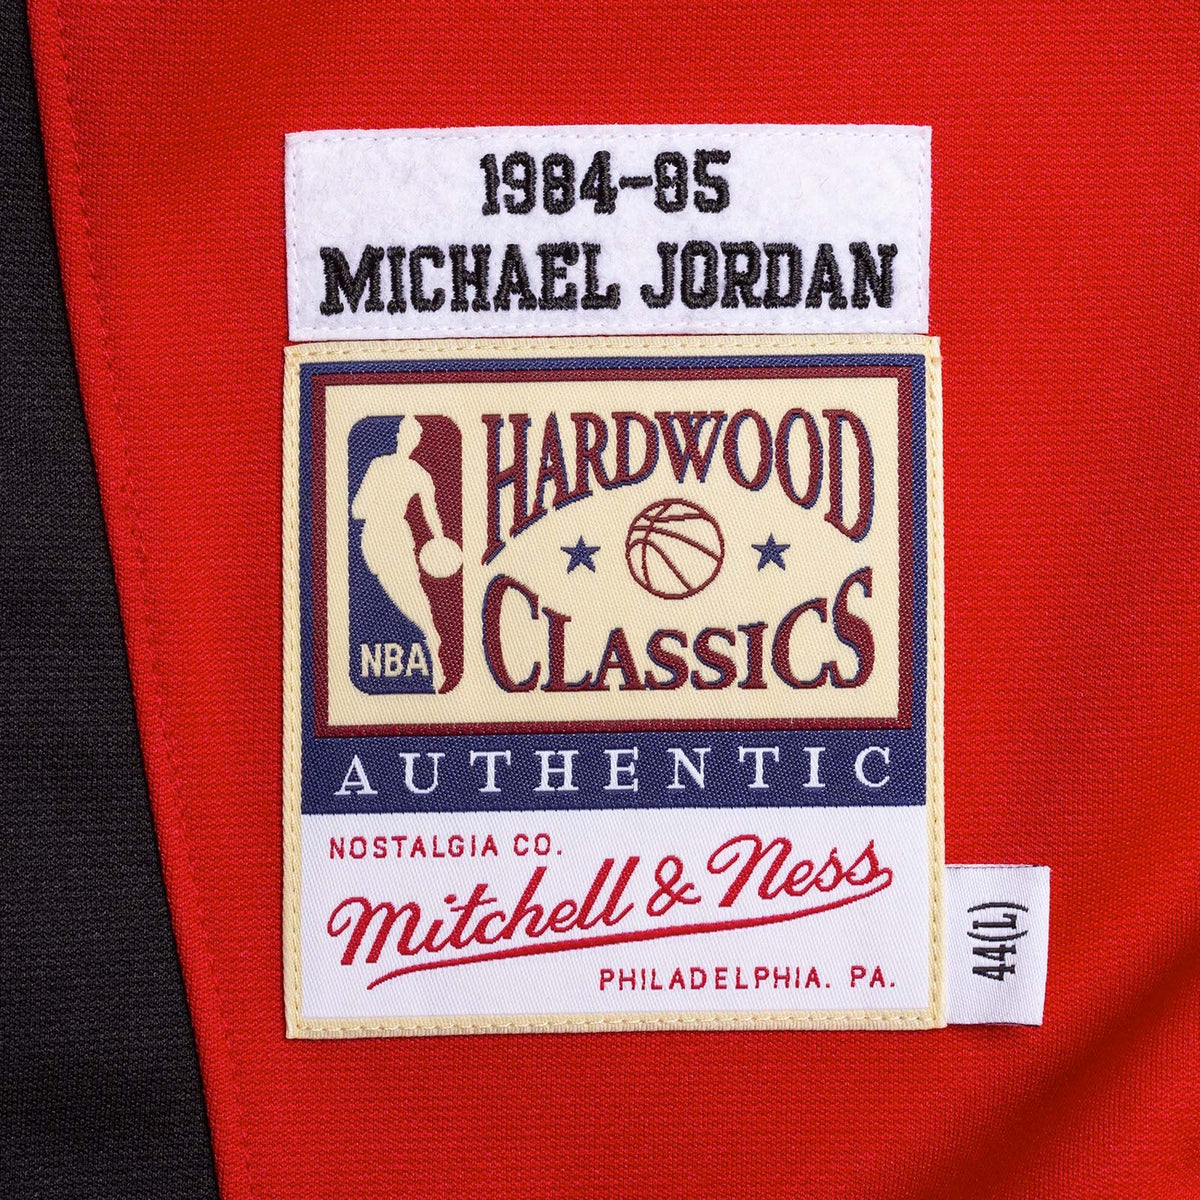 Michael Jordan Chicago Bulls 1984-85 Authentic Shooting Shirt - Red